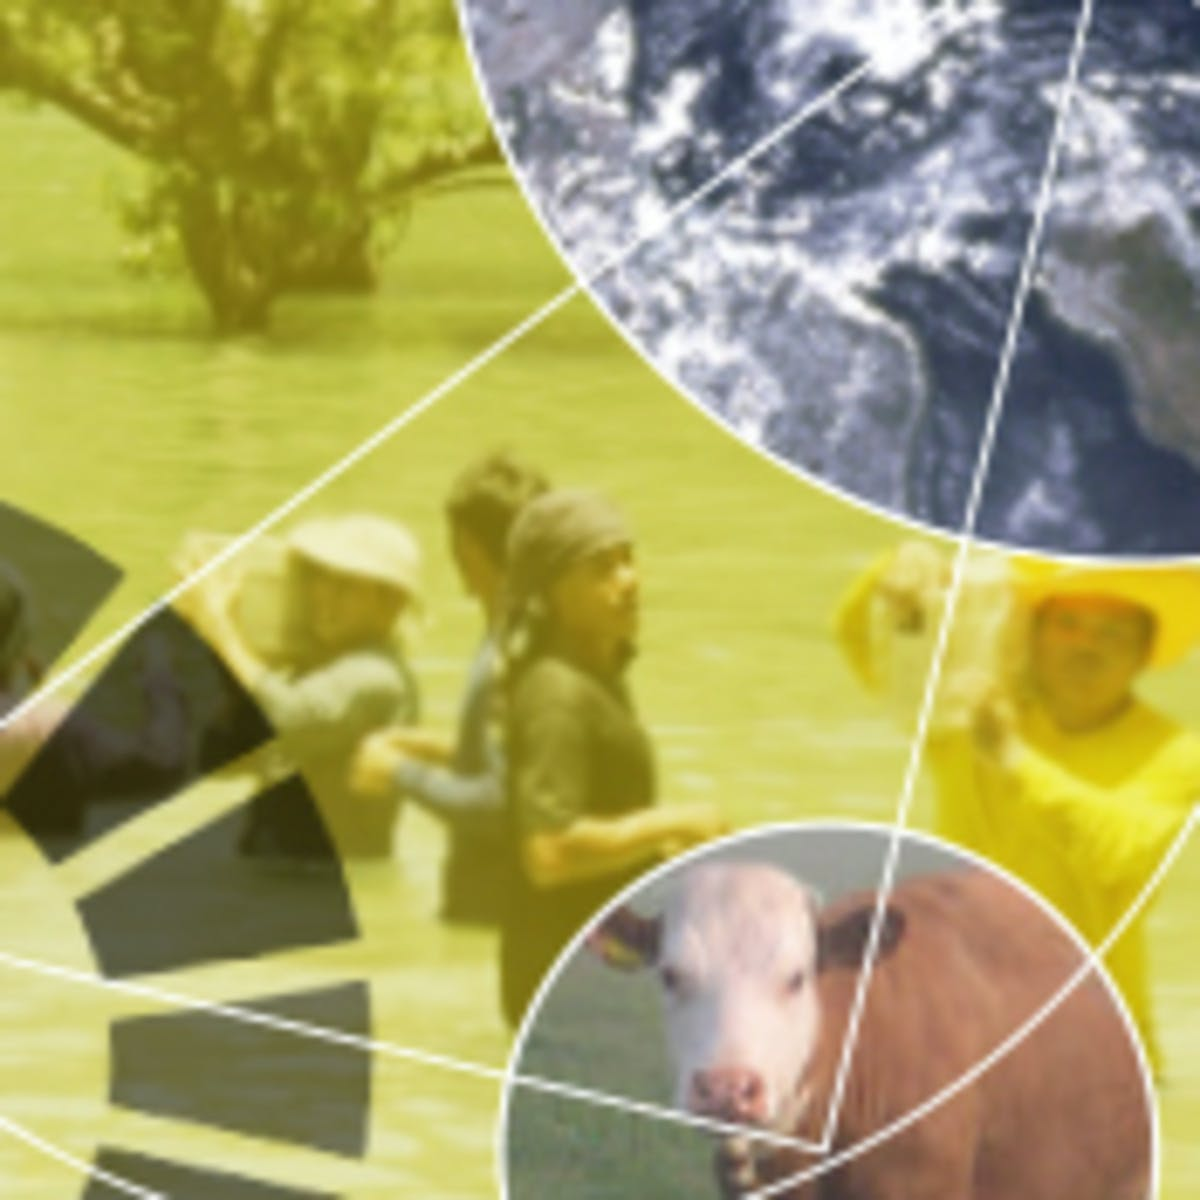 The Sustainable Development Goals – A global, transdisciplinary vision for the future